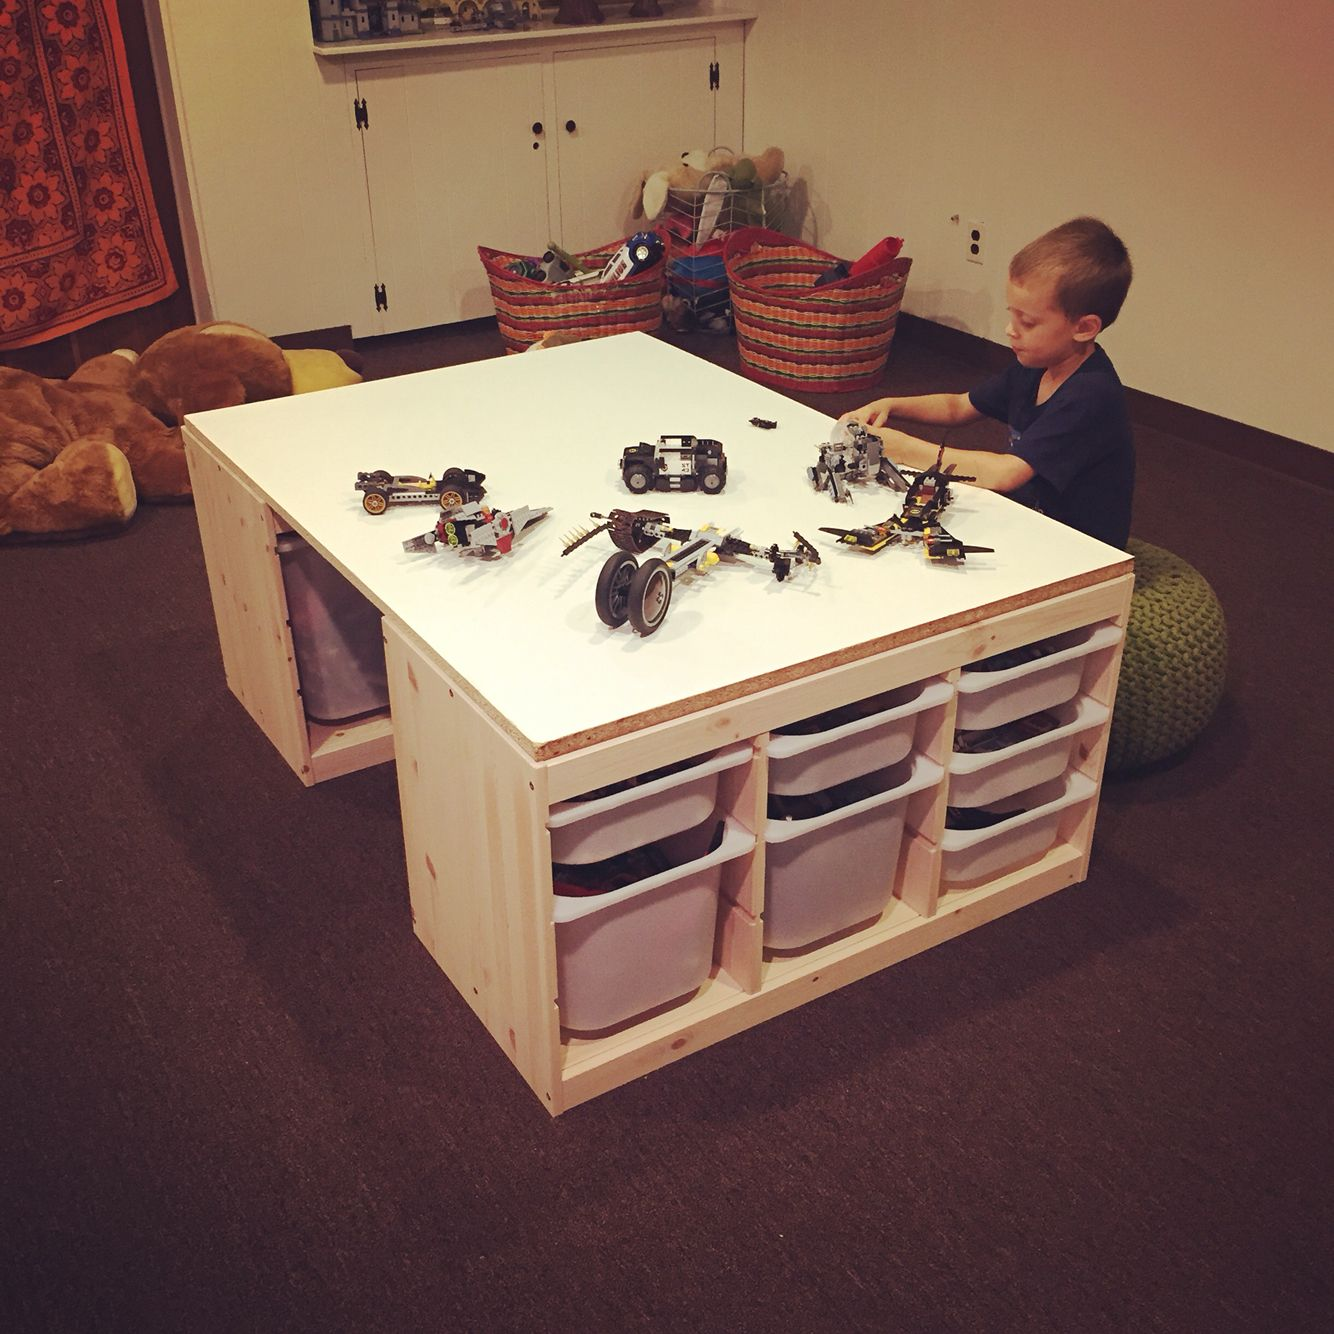 Lego Tisch Ikea Diy Lego Table Made With 2 Ikea Trofast Storage Units And